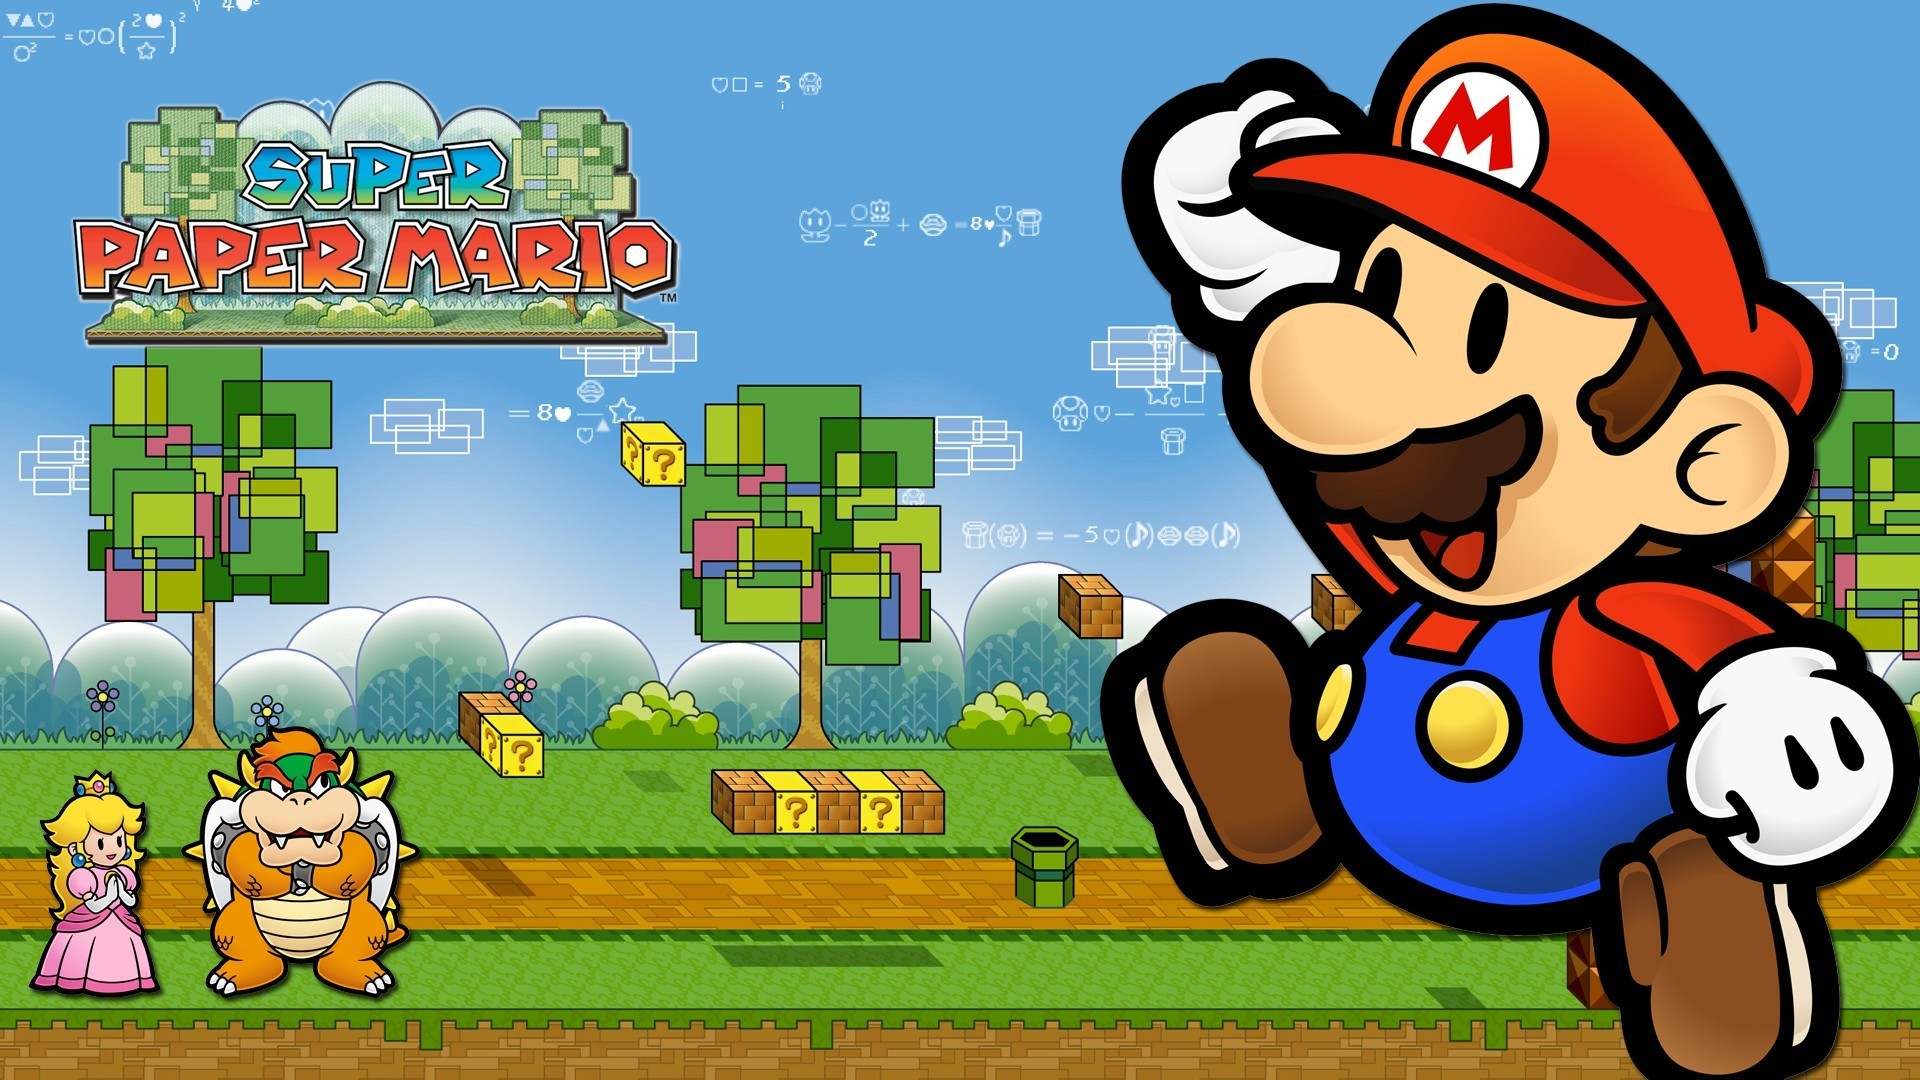 1920x1080  Super Paper Mario Computer Wallpapers, Desktop Backgrounds .